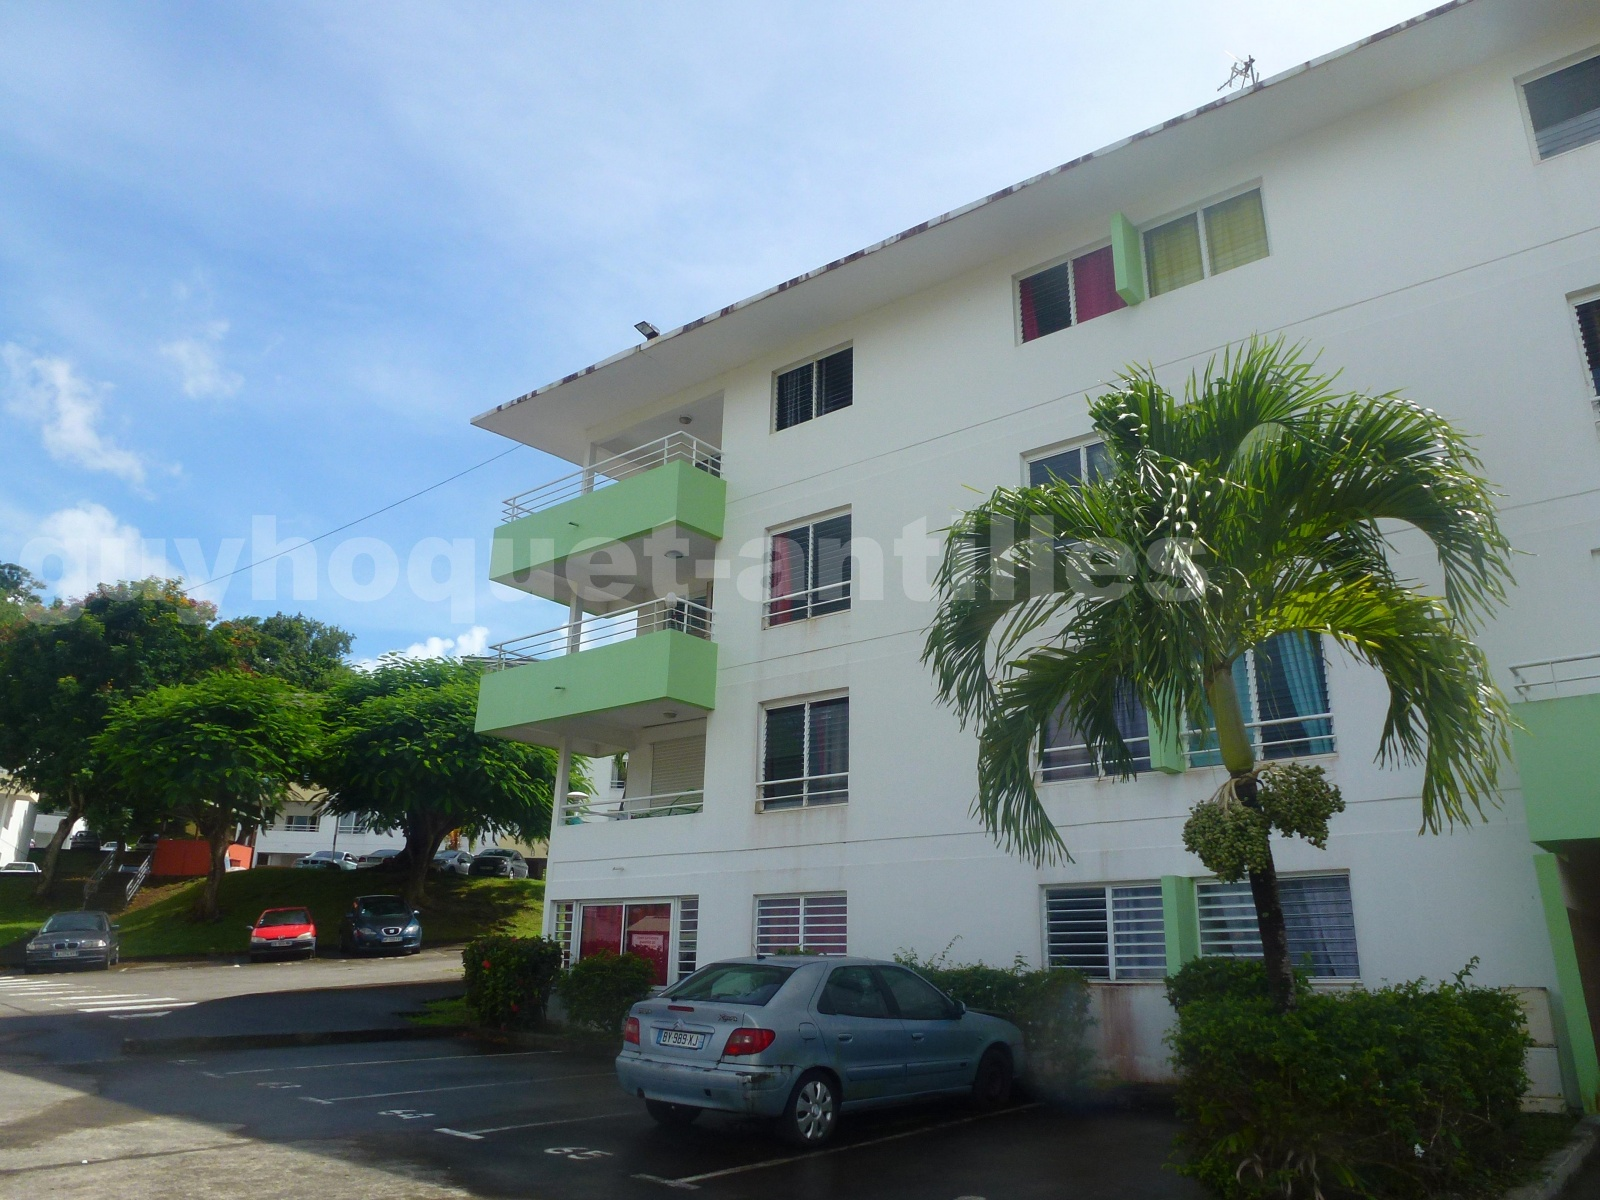 Achat immobilier guadeloupe martinique antilles for Achat maison guadeloupe